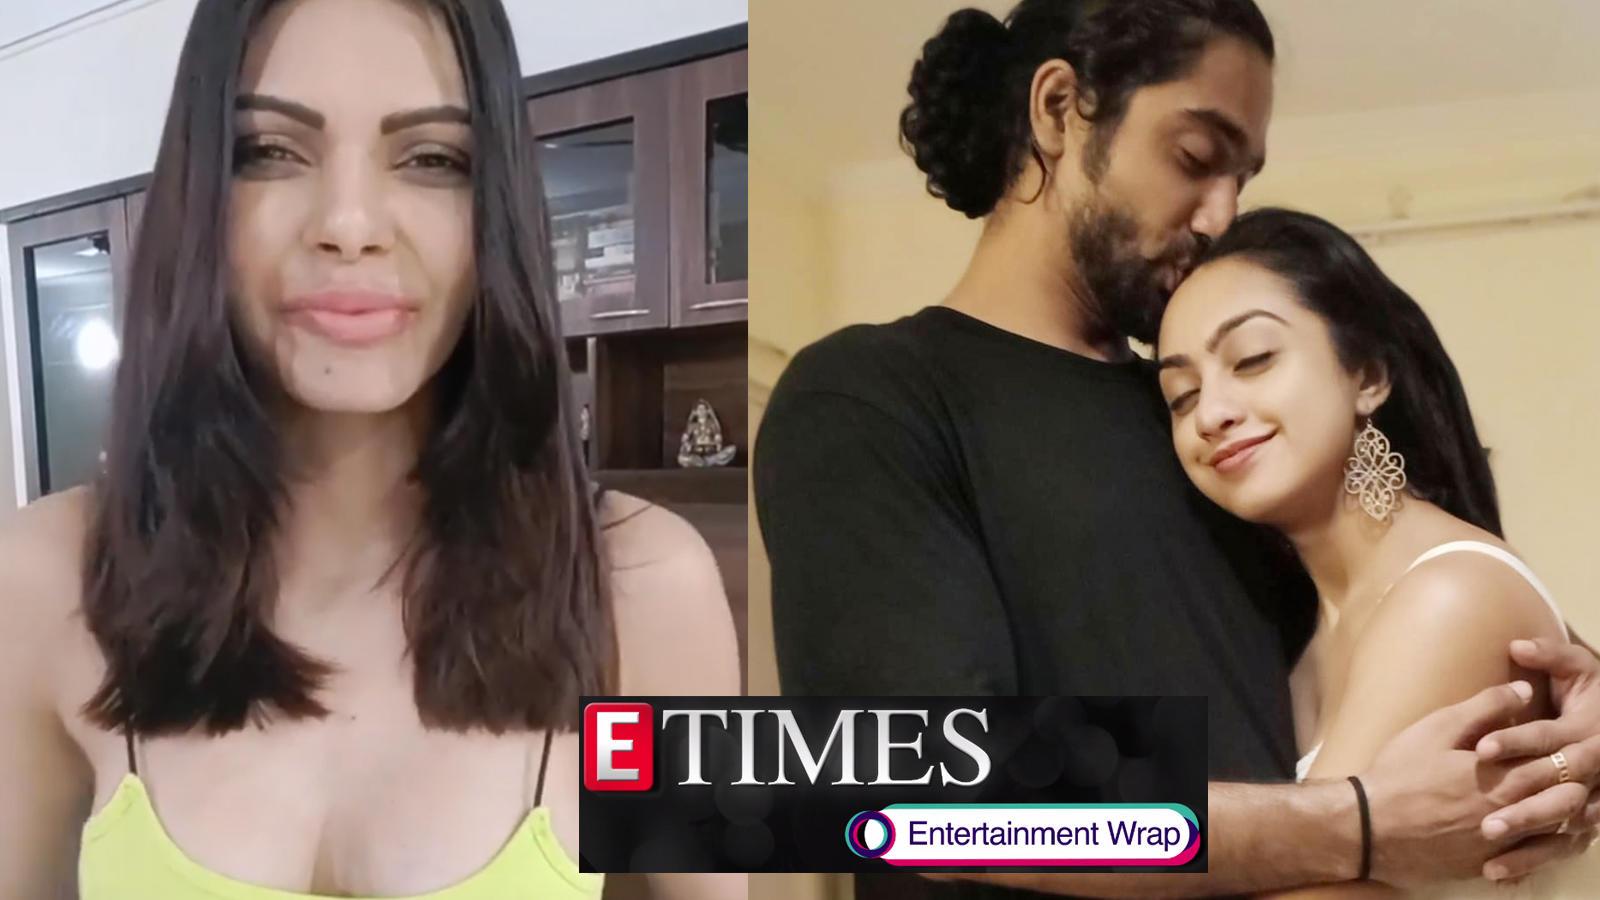 sherlyn-chopra-claims-she-saw-wives-of-cricketers-bollywood-stars-snorting-white-powder-at-ipl-party-ncb-files-drug-consumption-case-against-tv-actors-sanam-johar-and-abigail-and-more-